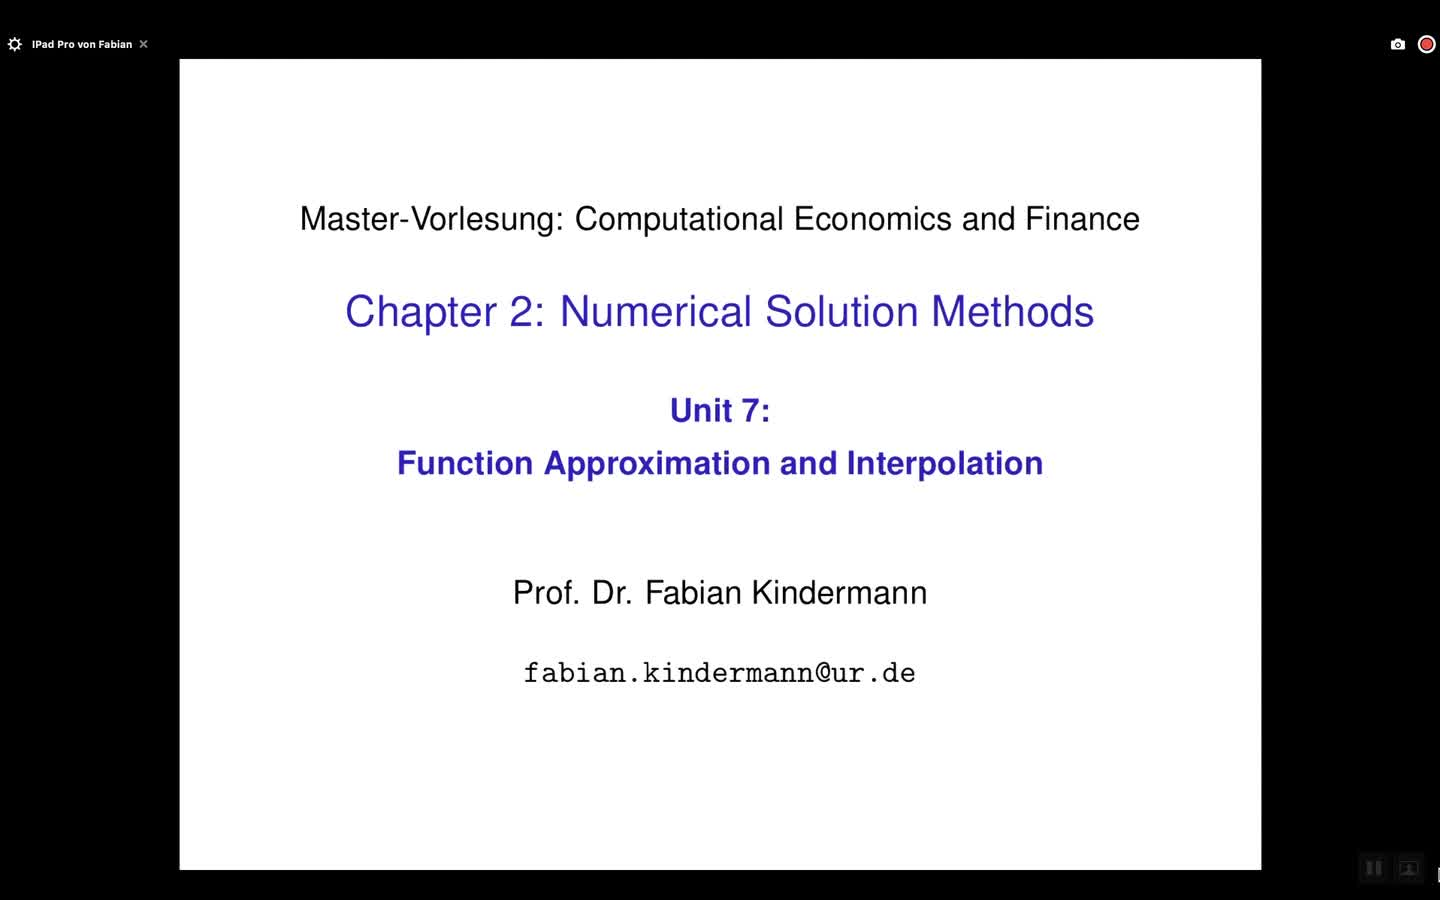 Chapter 2 - Unit 7 - Function Approximation and Interpolation